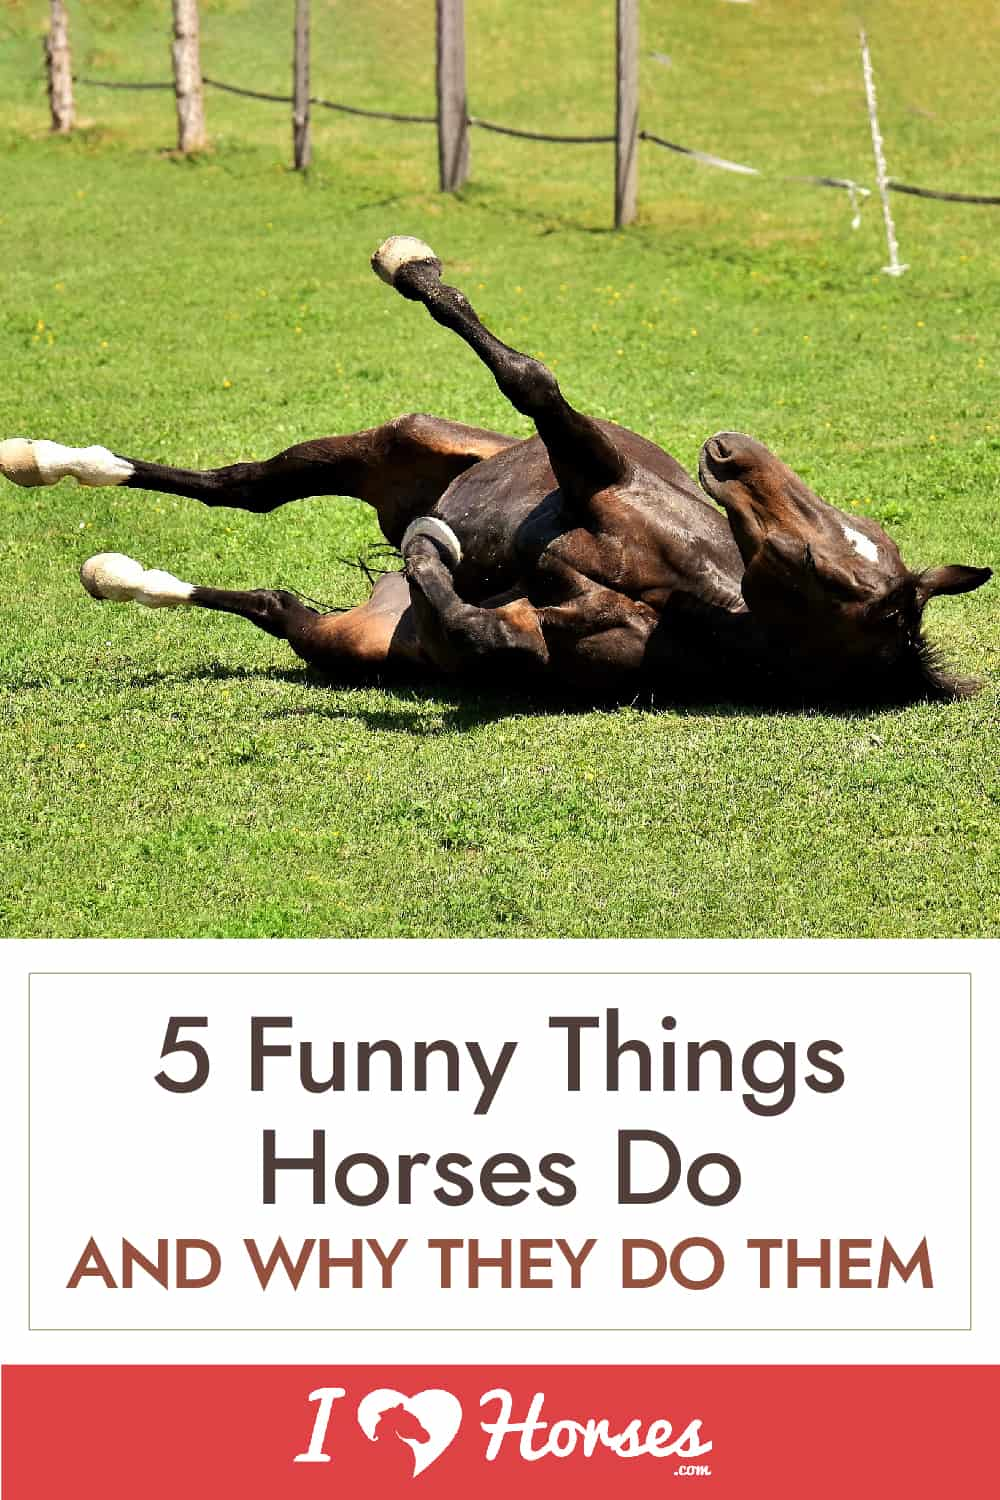 5 Funny Things Horses Do And Why They Do Them